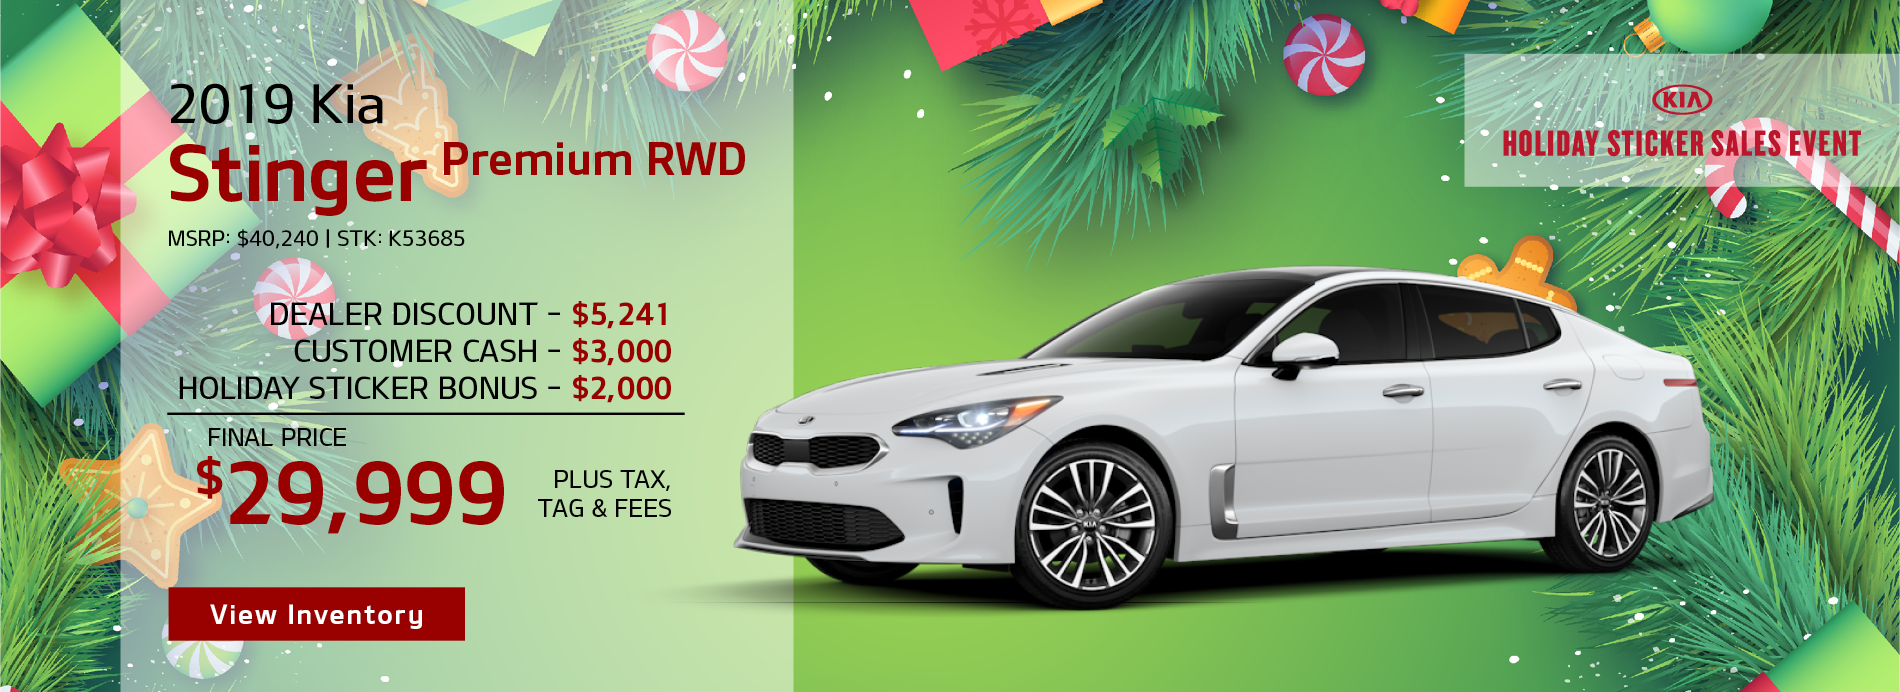 Kia Lease Specials >> New Kia Lease Specials In Fort Lauderdale At Gunther Kia